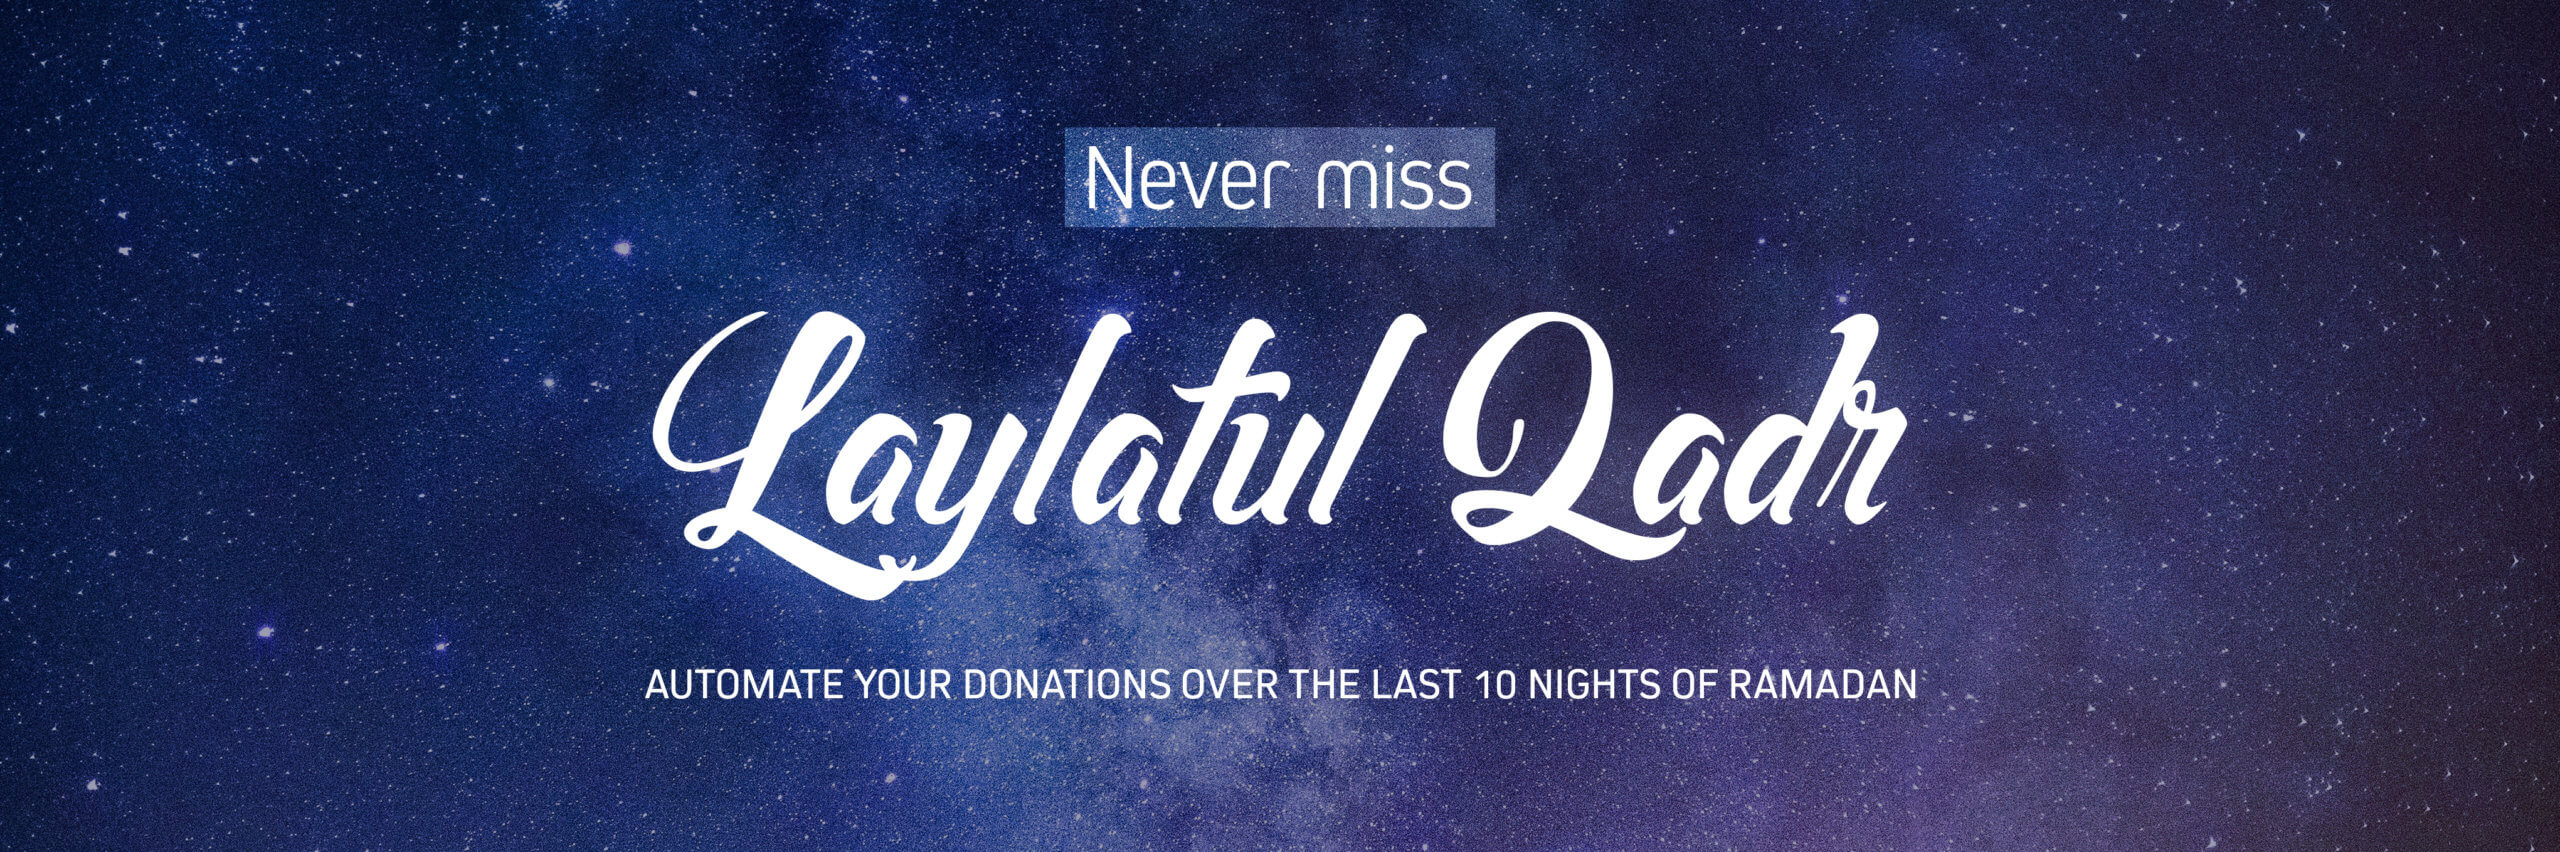 laylatulqadr-10nights